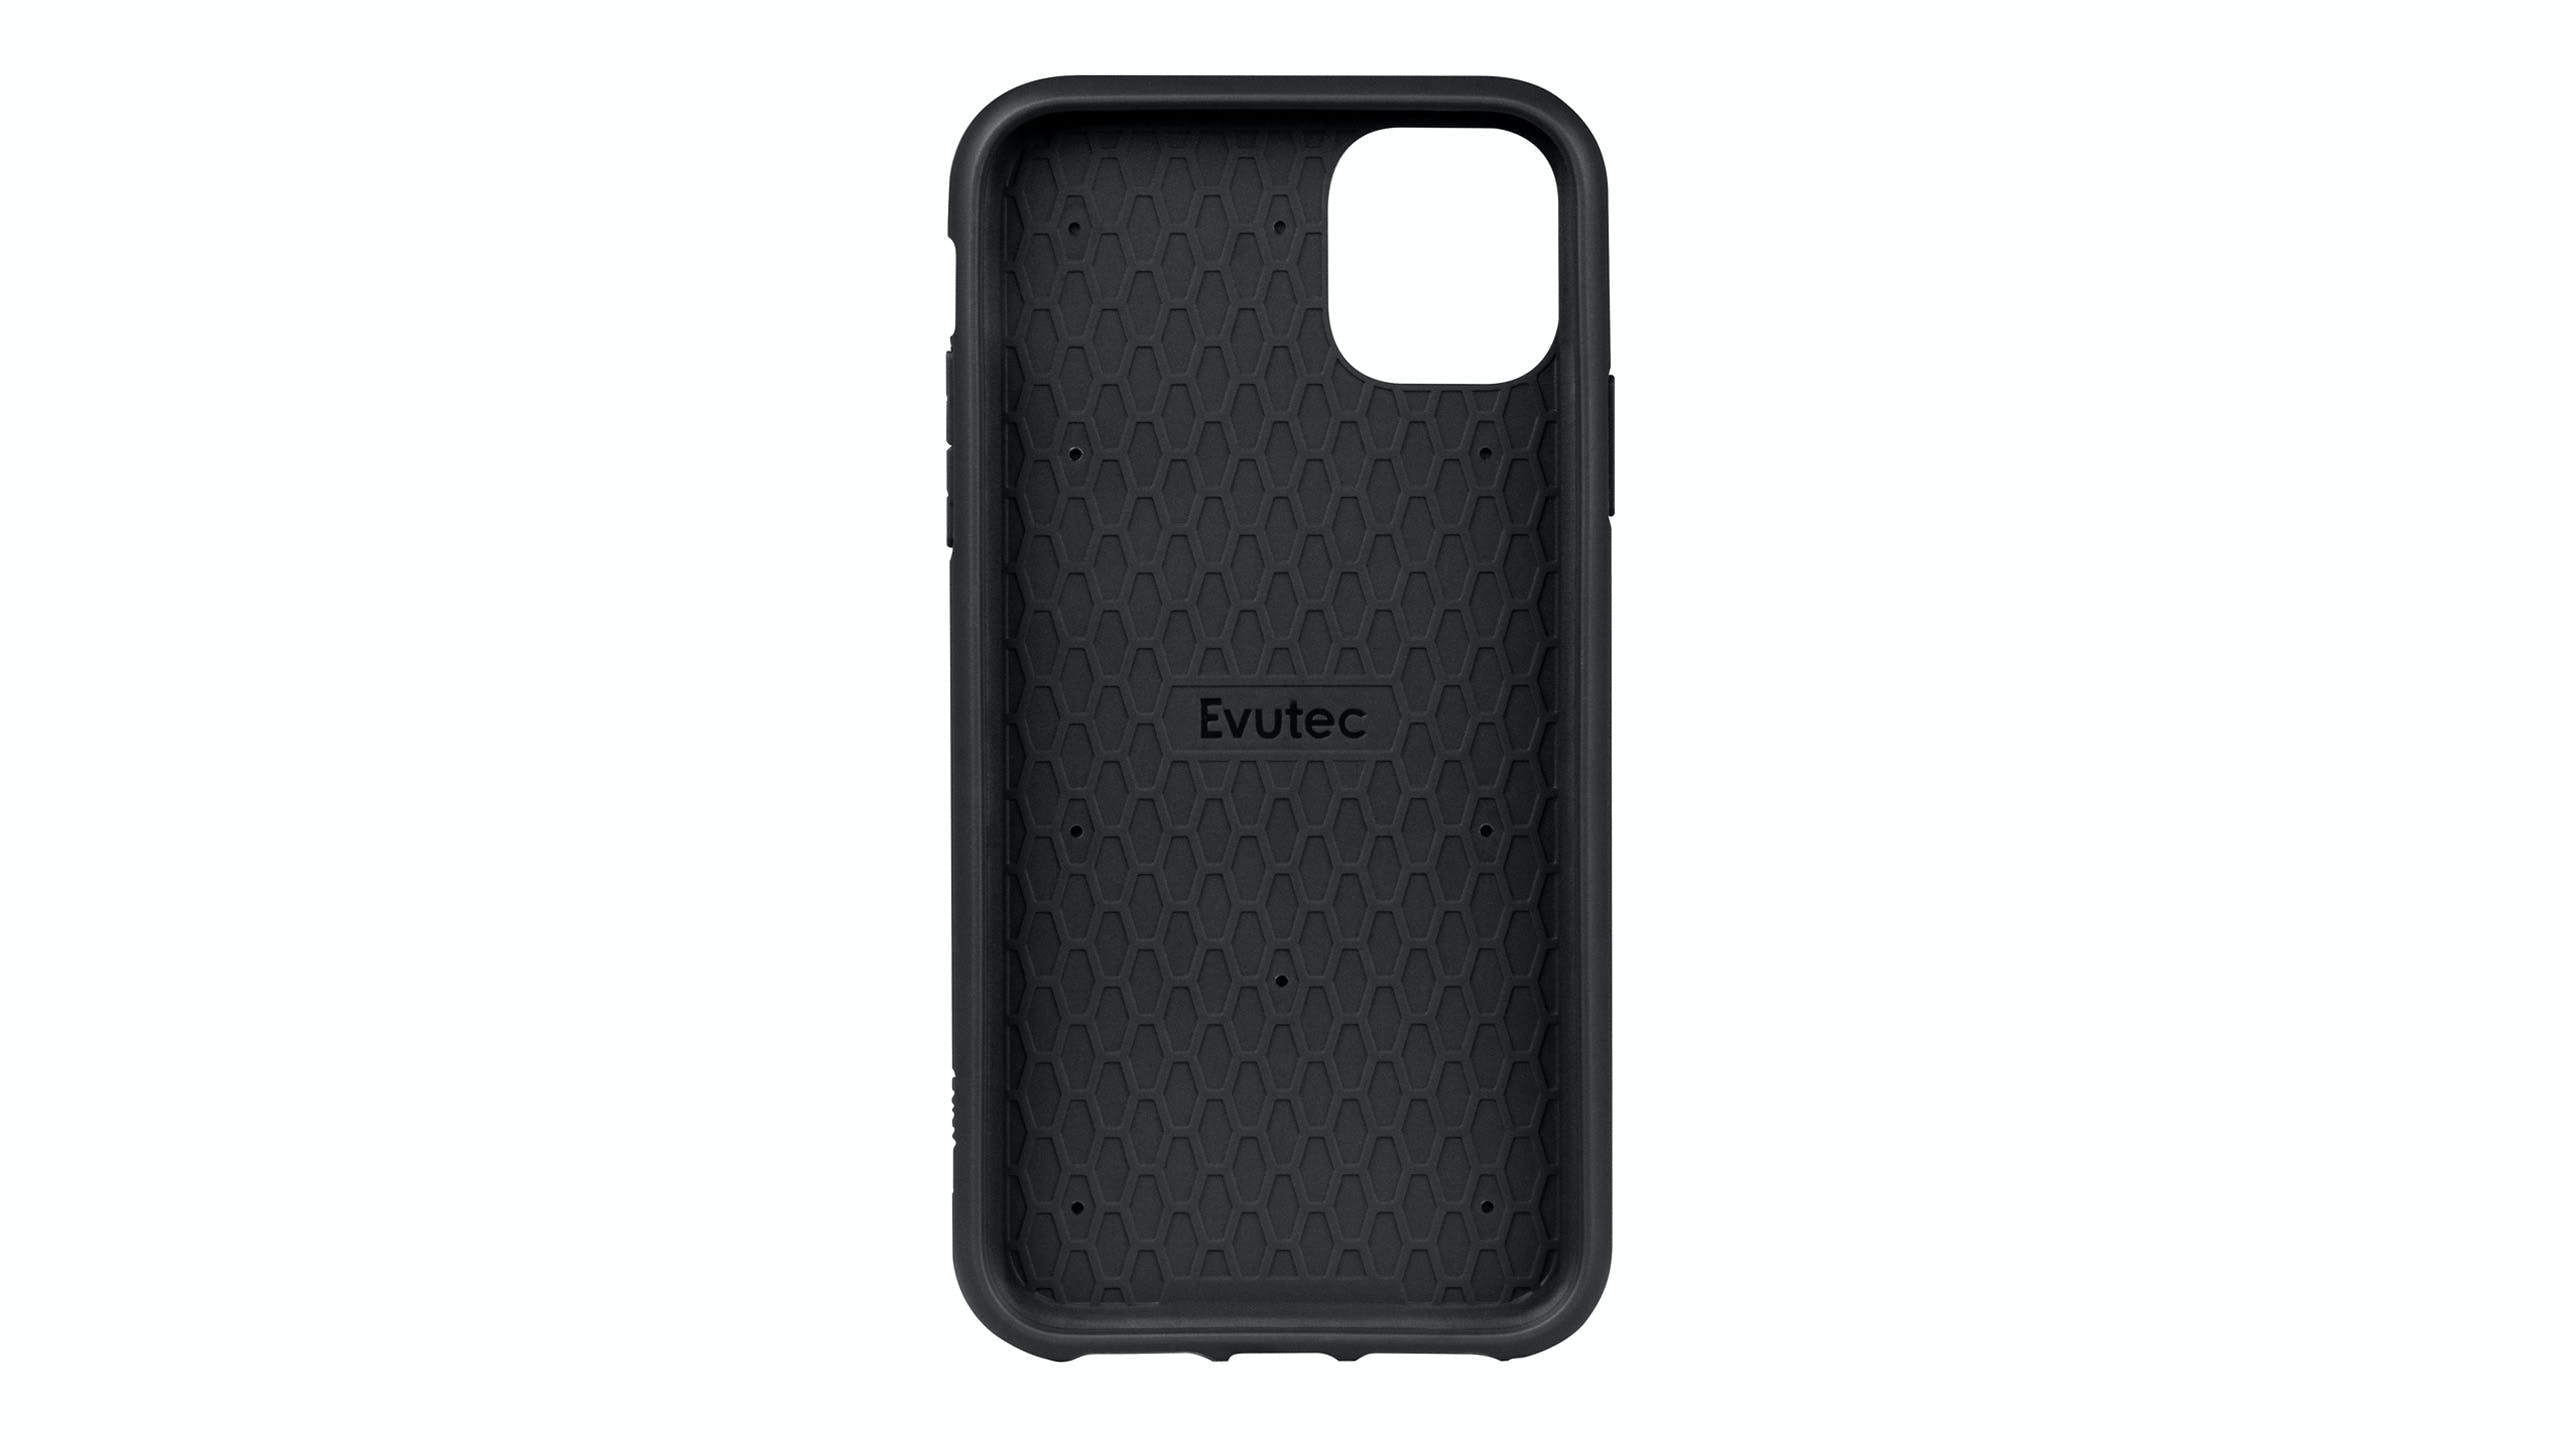 Evutec IPhone 11 Pro Max Ballistic Nylon Case - Black